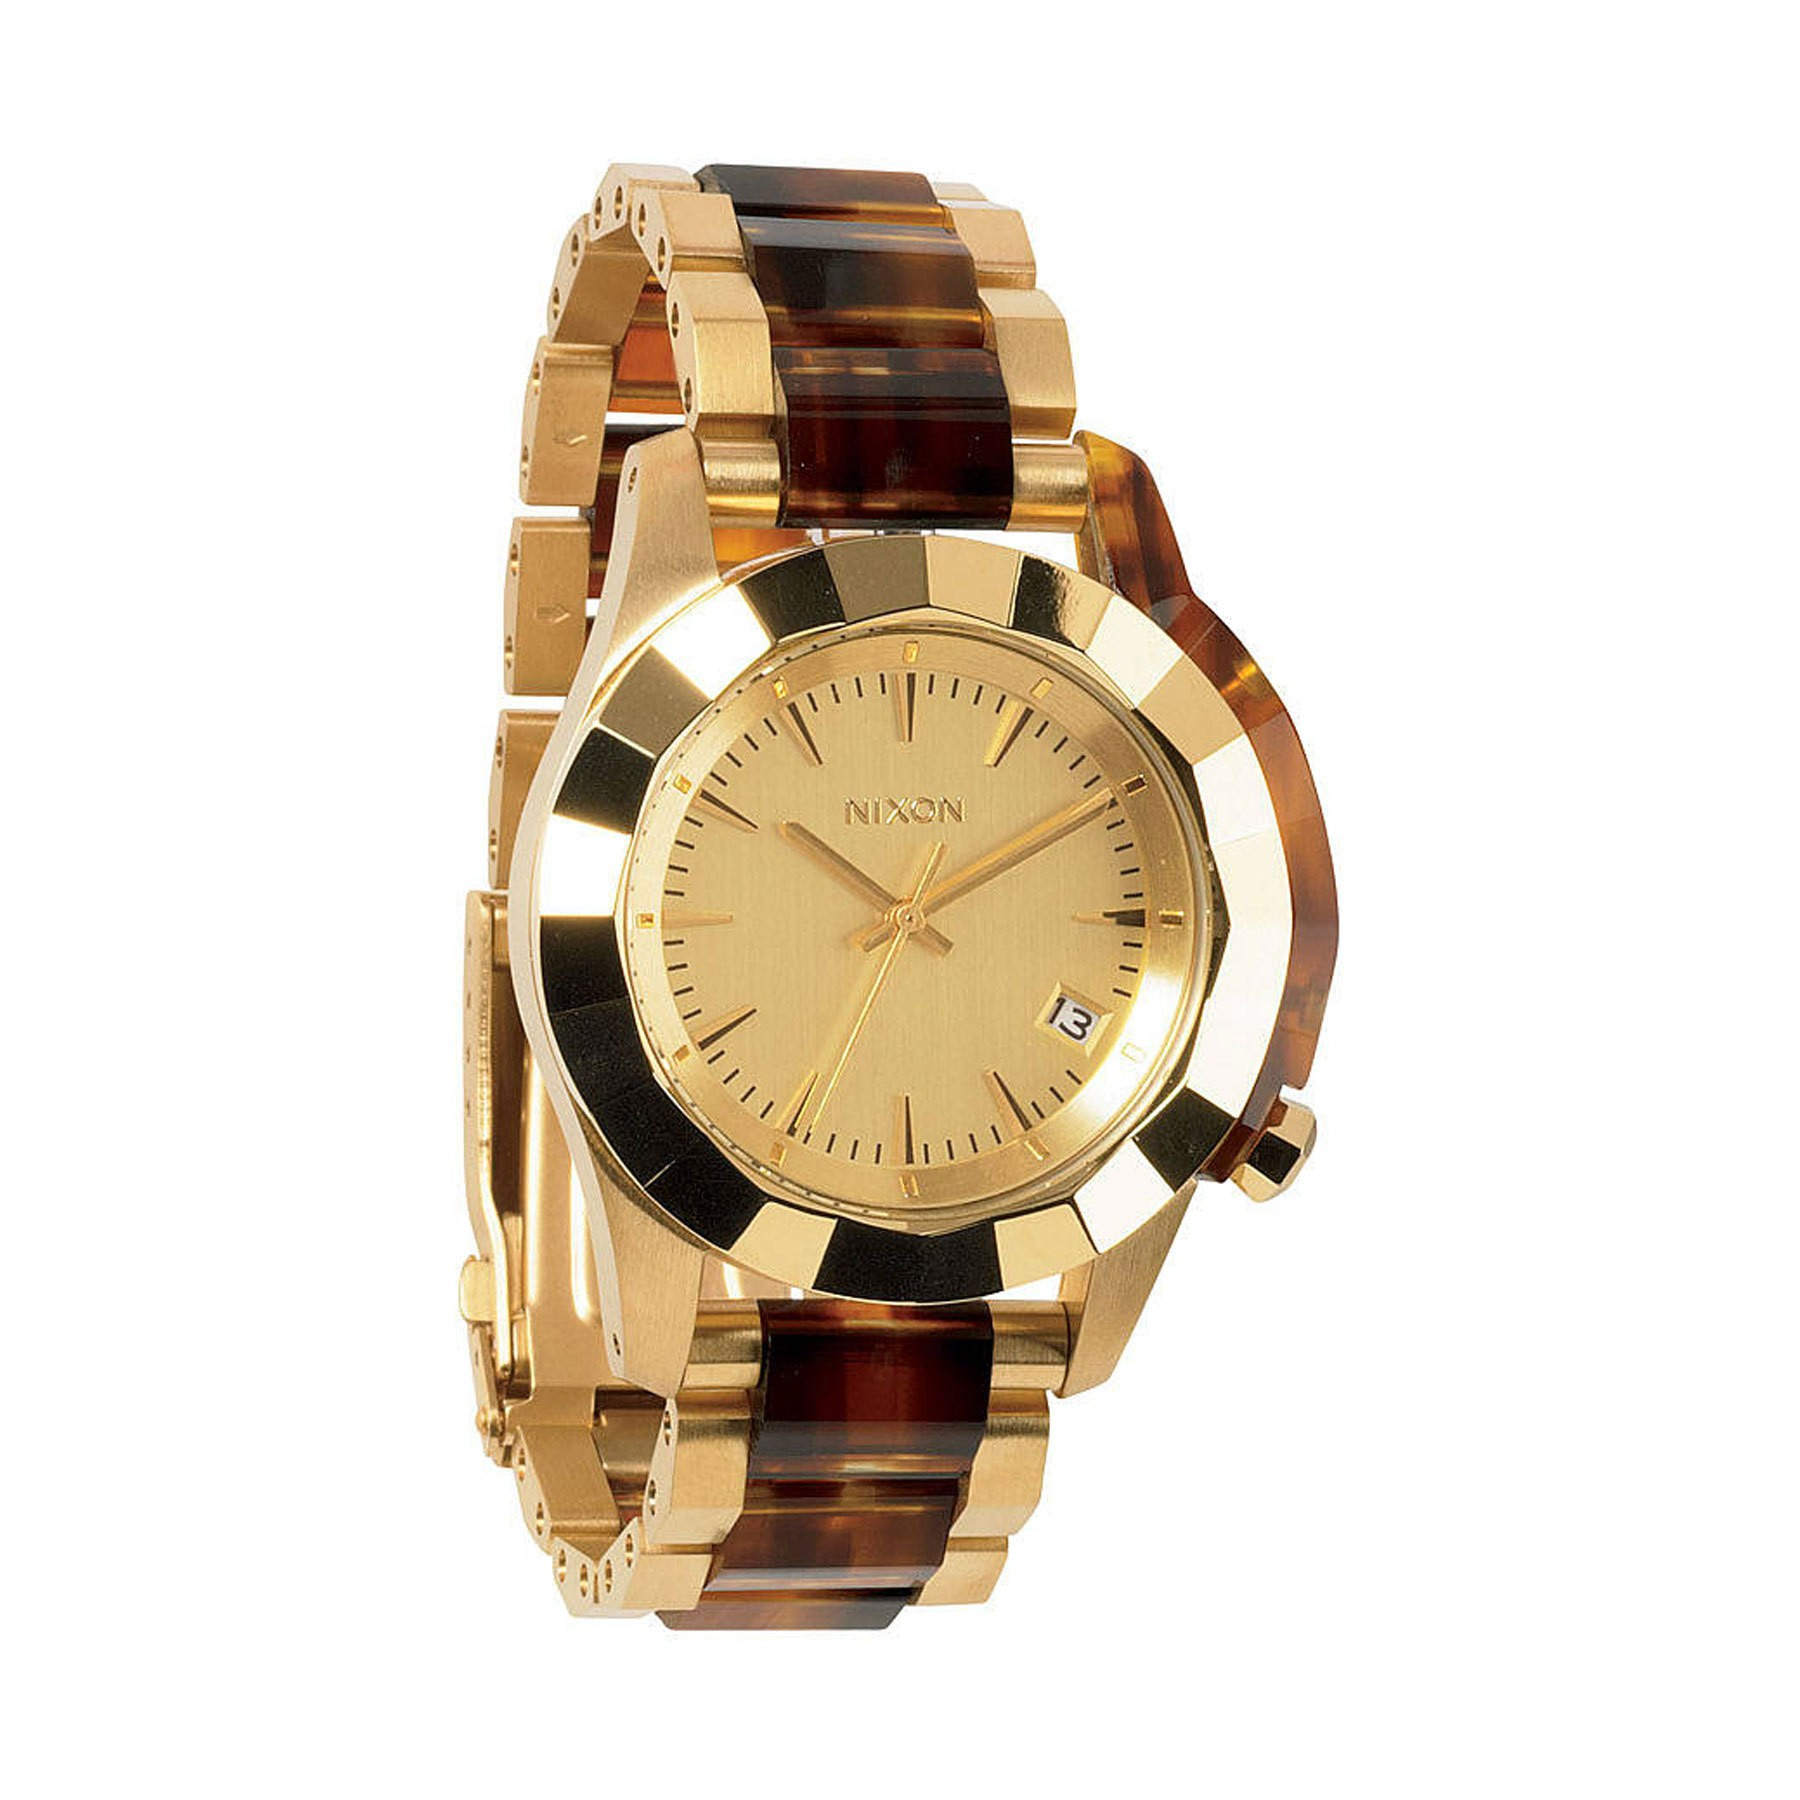 Bargain - $259.99 (was $519.99) - THE MONARCH WATCH @ Amazon Surf